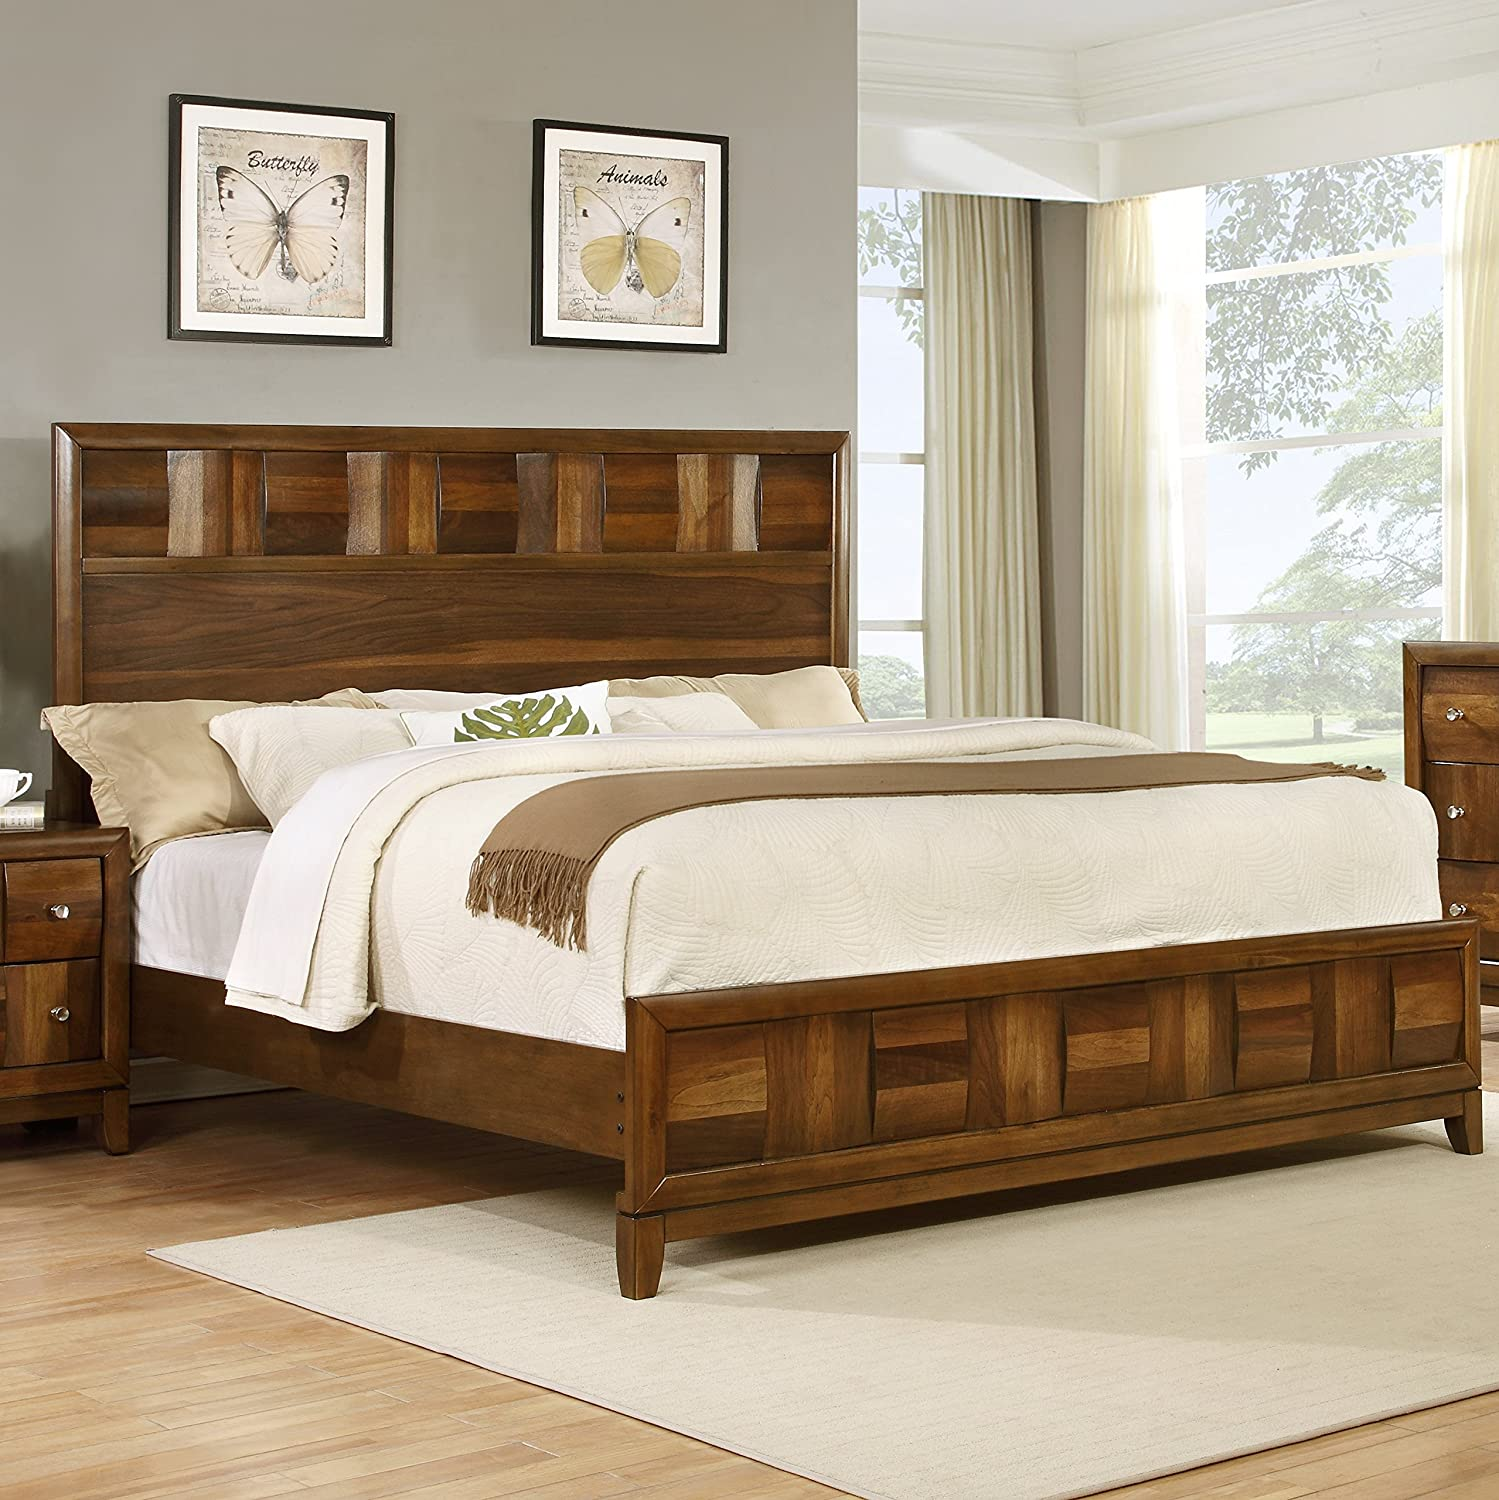 cor room d furniture solaris home queen bed brssett size bedroom piece set new